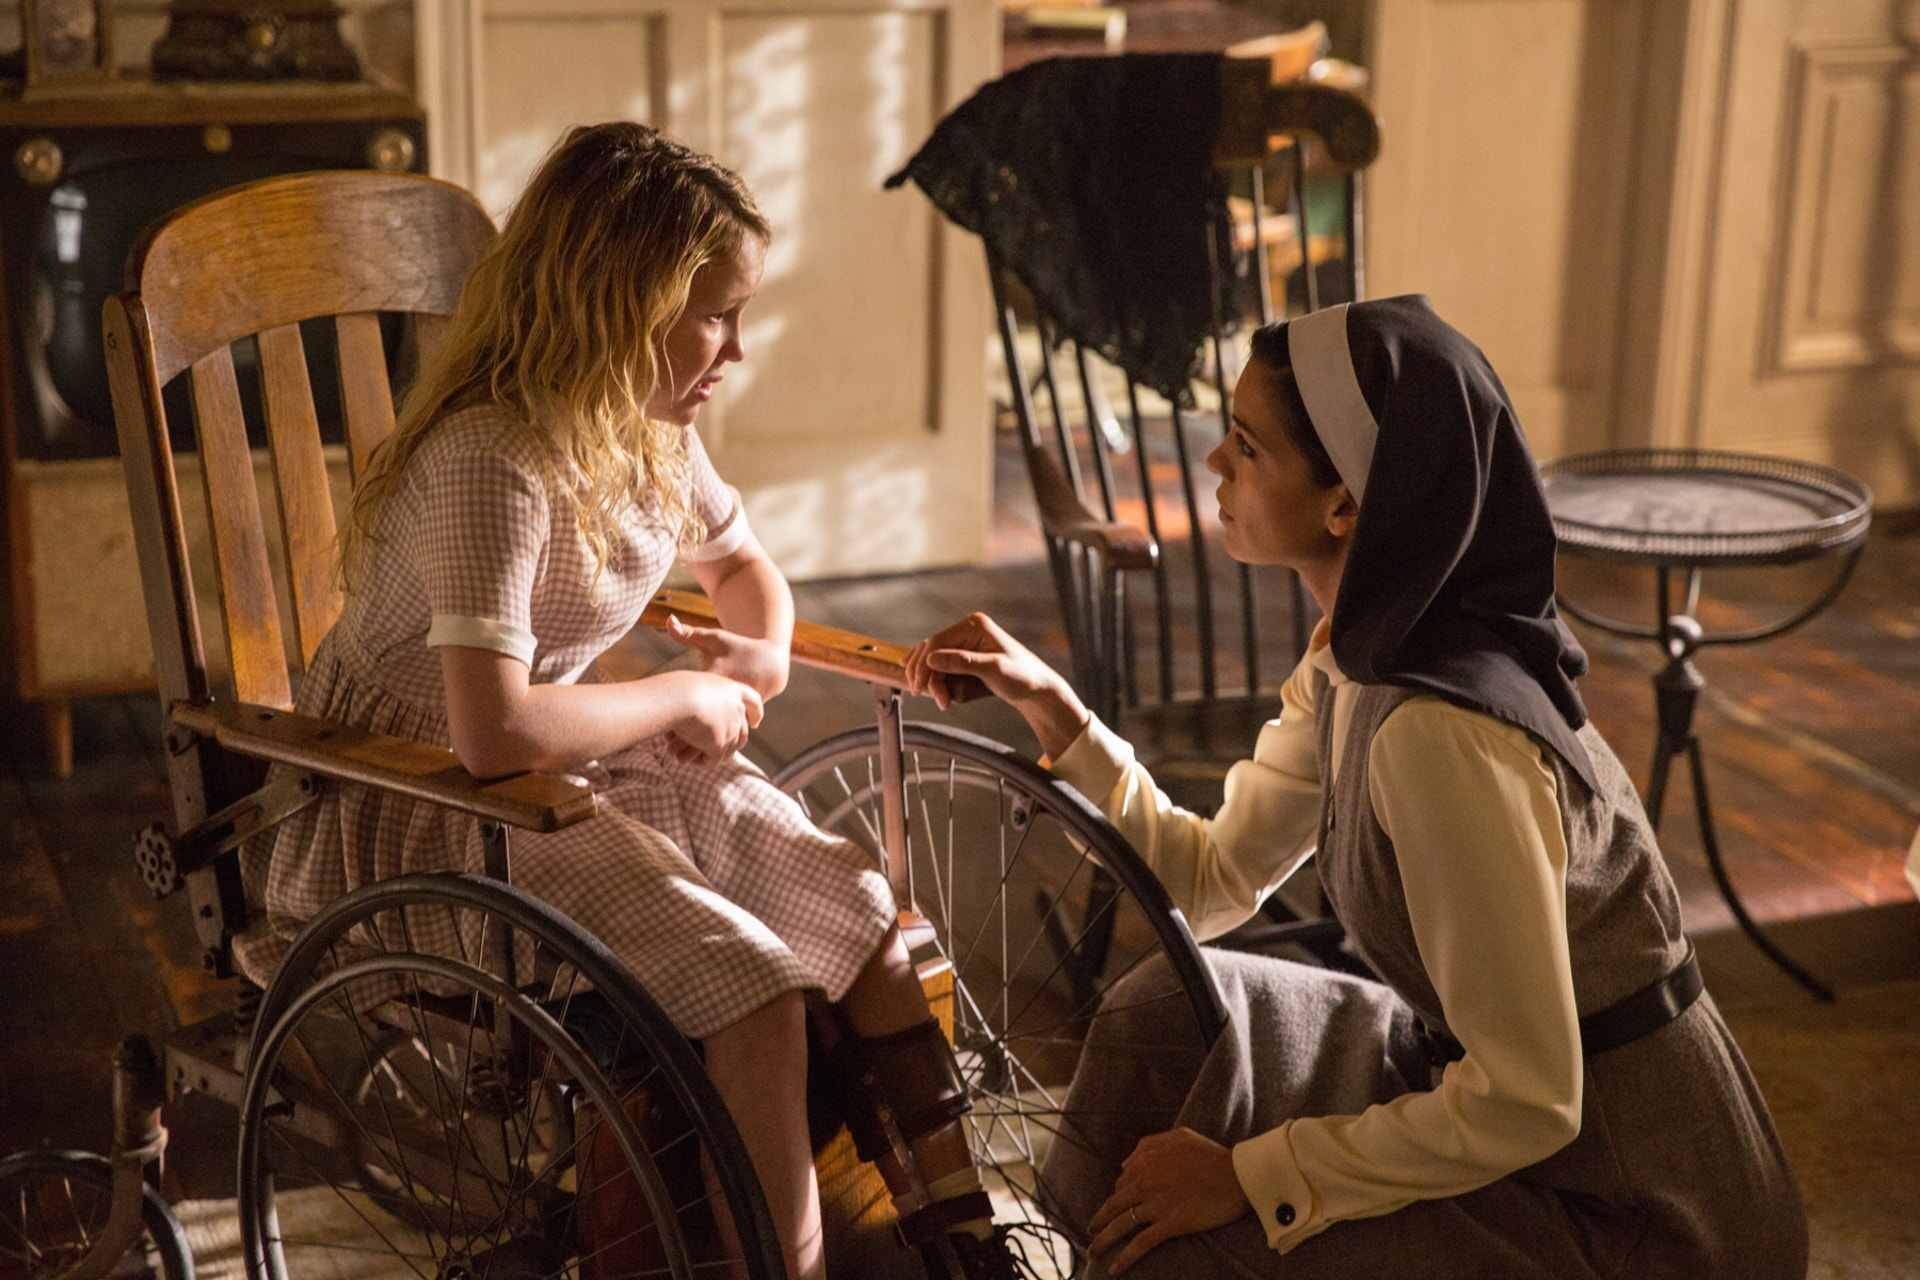 """TALITHA BATEMAN as Janice and STEPHANIE SIGMAN as Sister Charlotte in New Line Cinema's supernatural thriller """"ANNABELLE: CREATION,"""" a Warner Bros. Pictures release."""